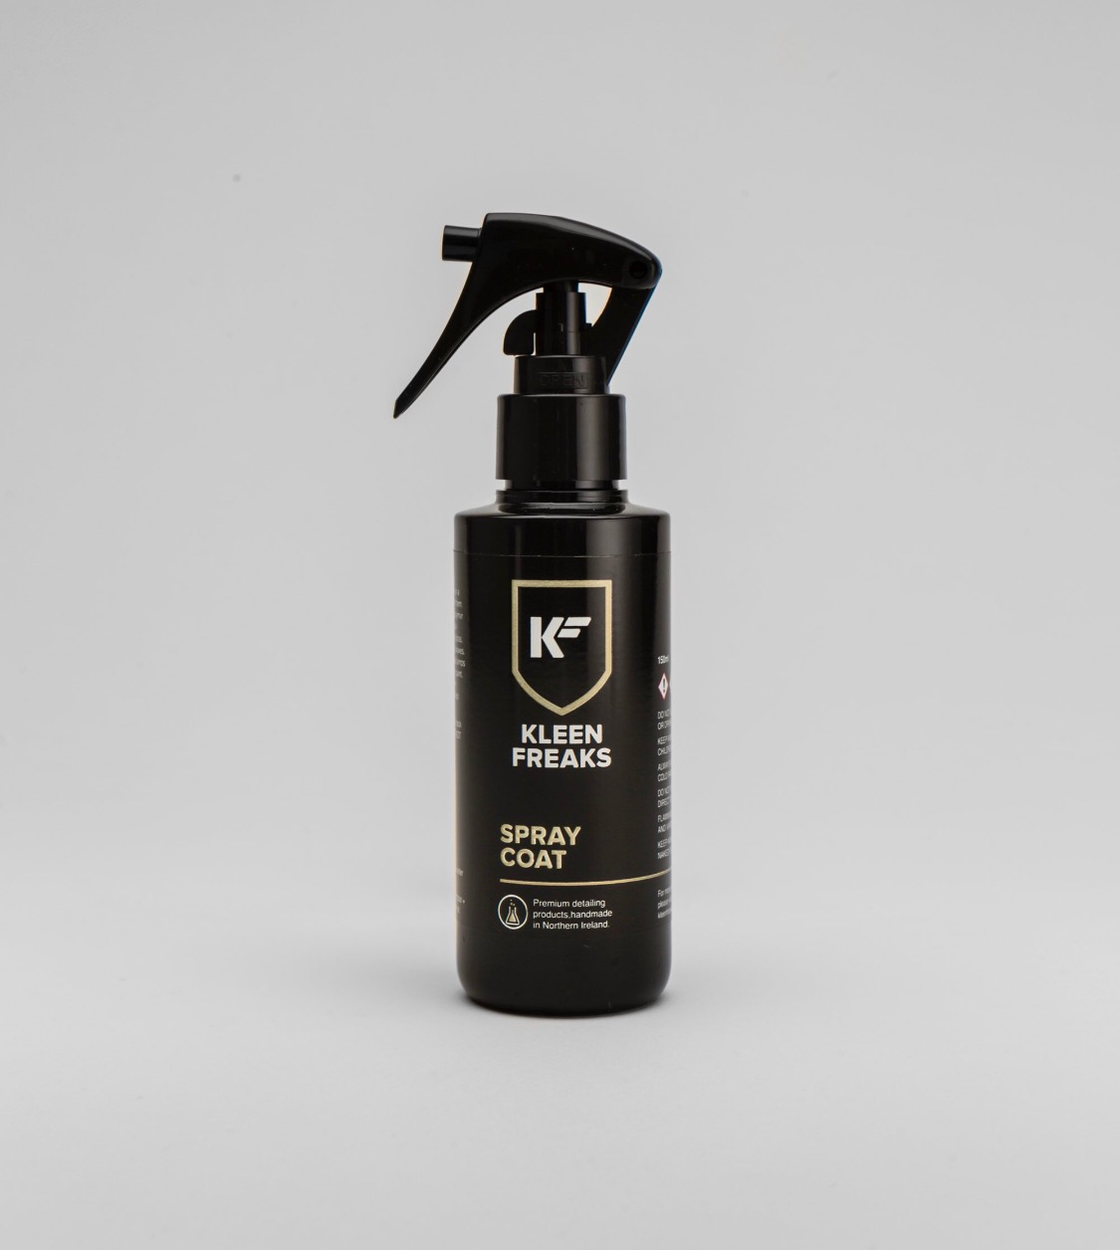 Image of Kleen Freaks Spray Coat